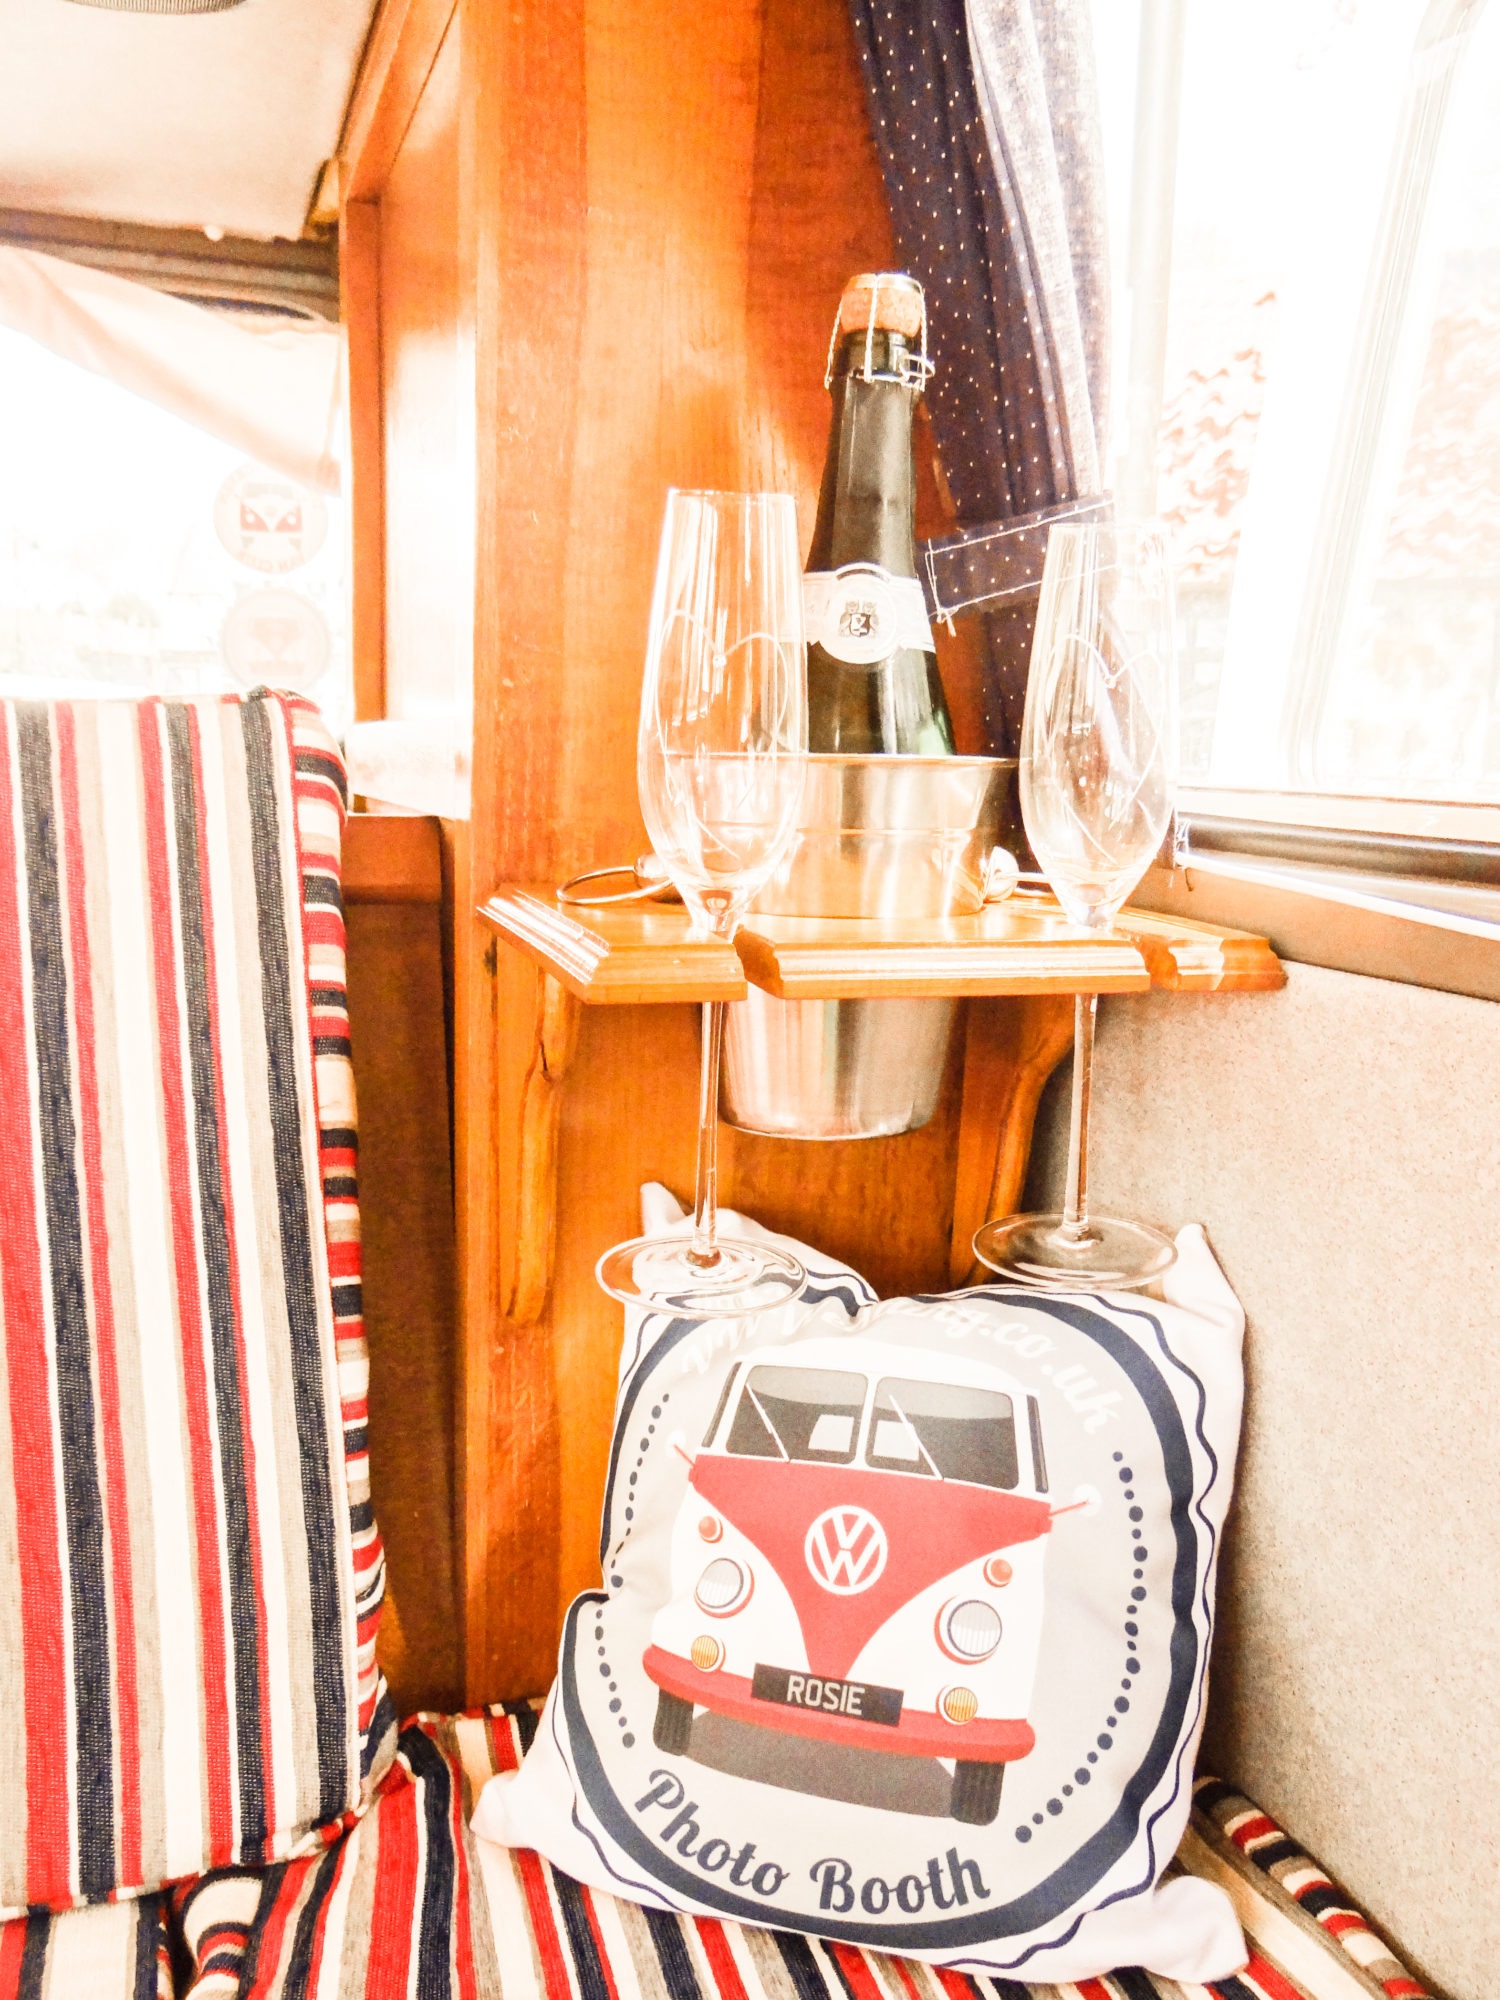 Camper Van Wedding Transport Interior champagne and glasses